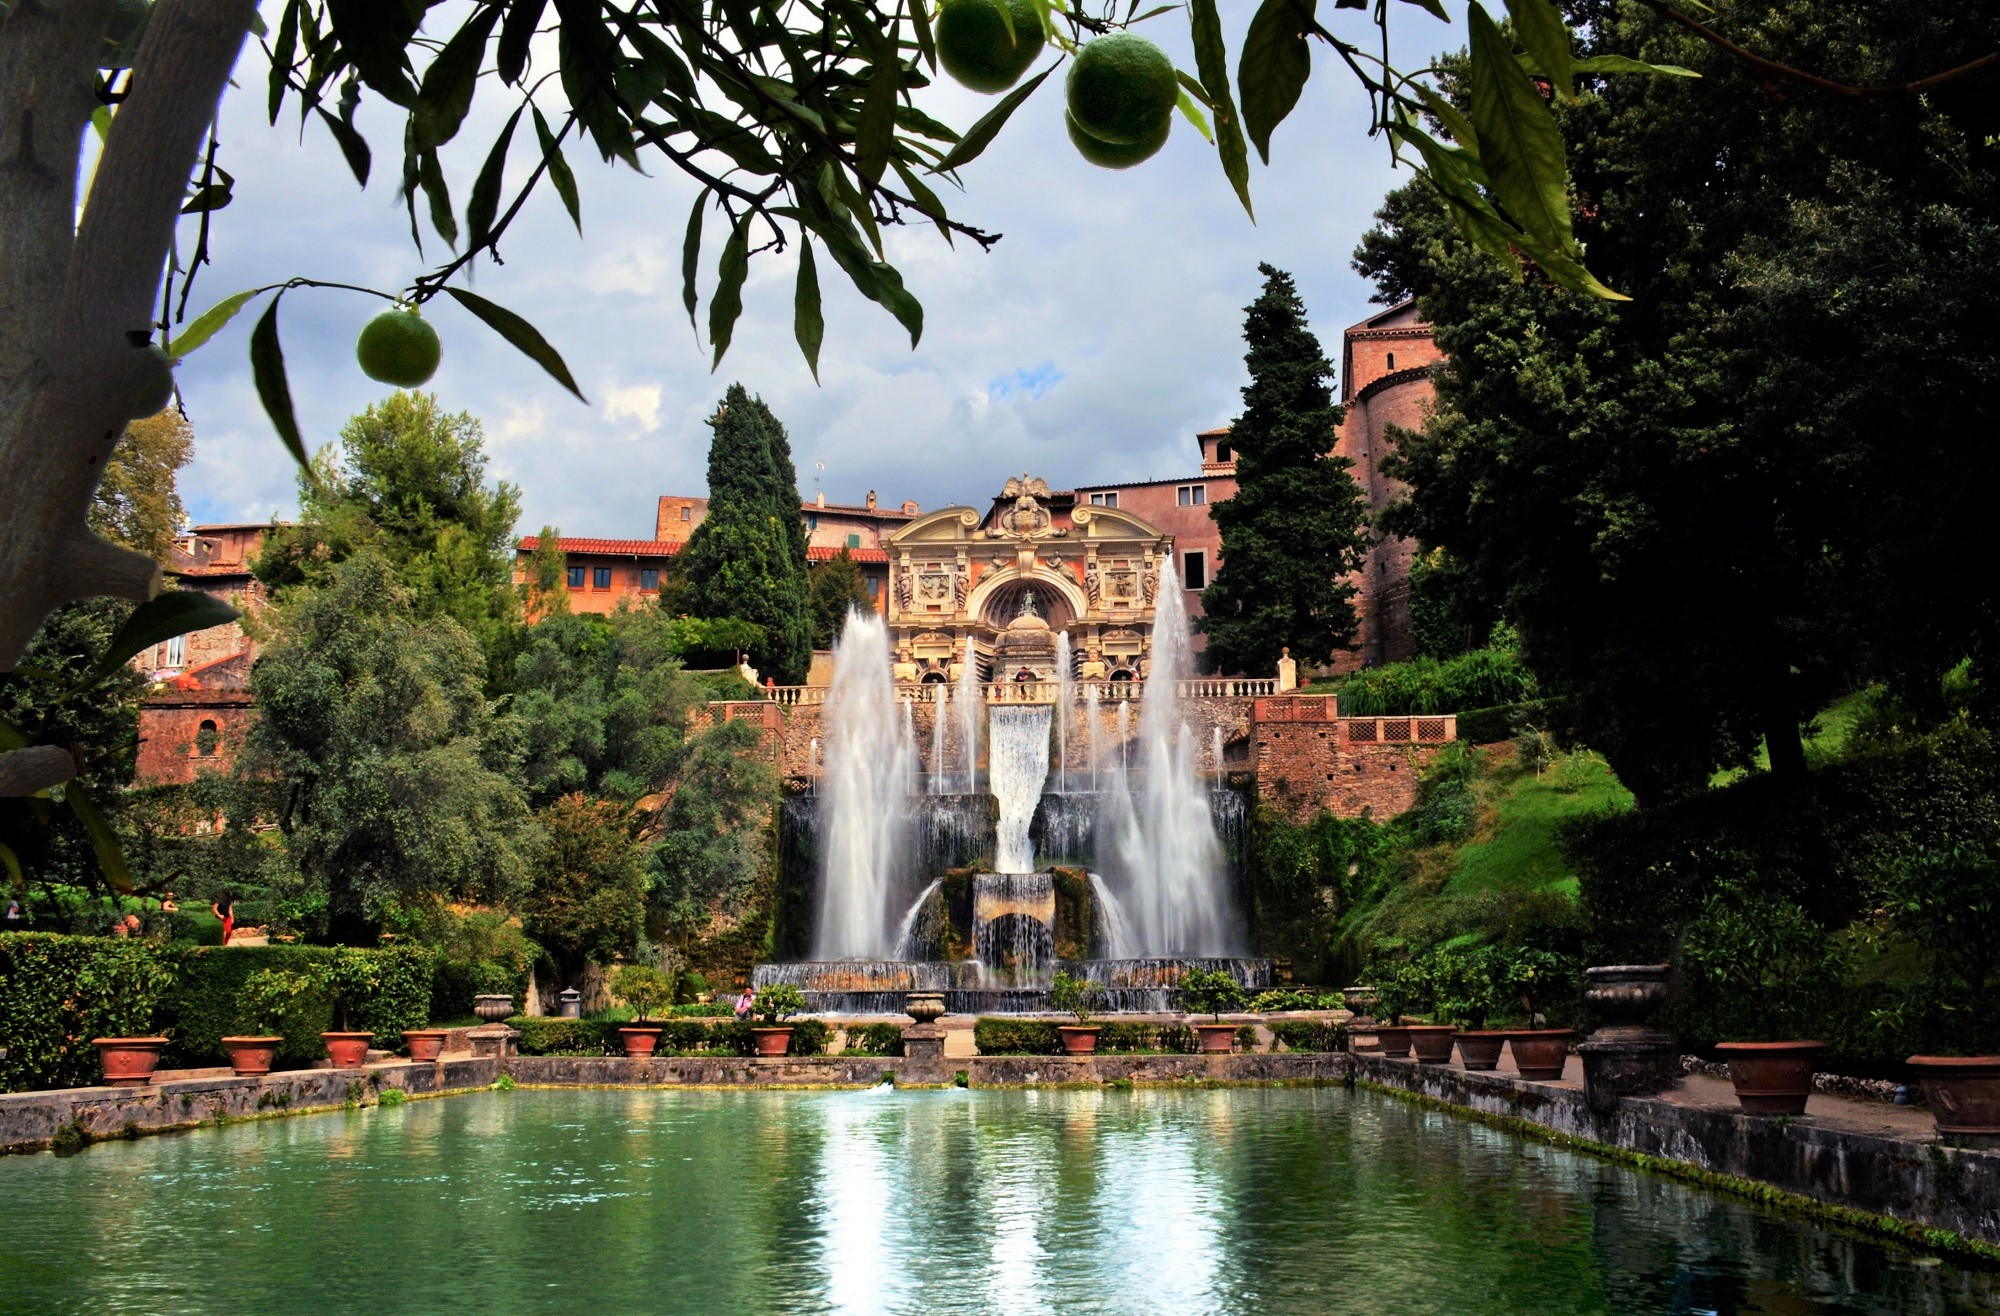 What distinguishes an Italian-Style Garden?